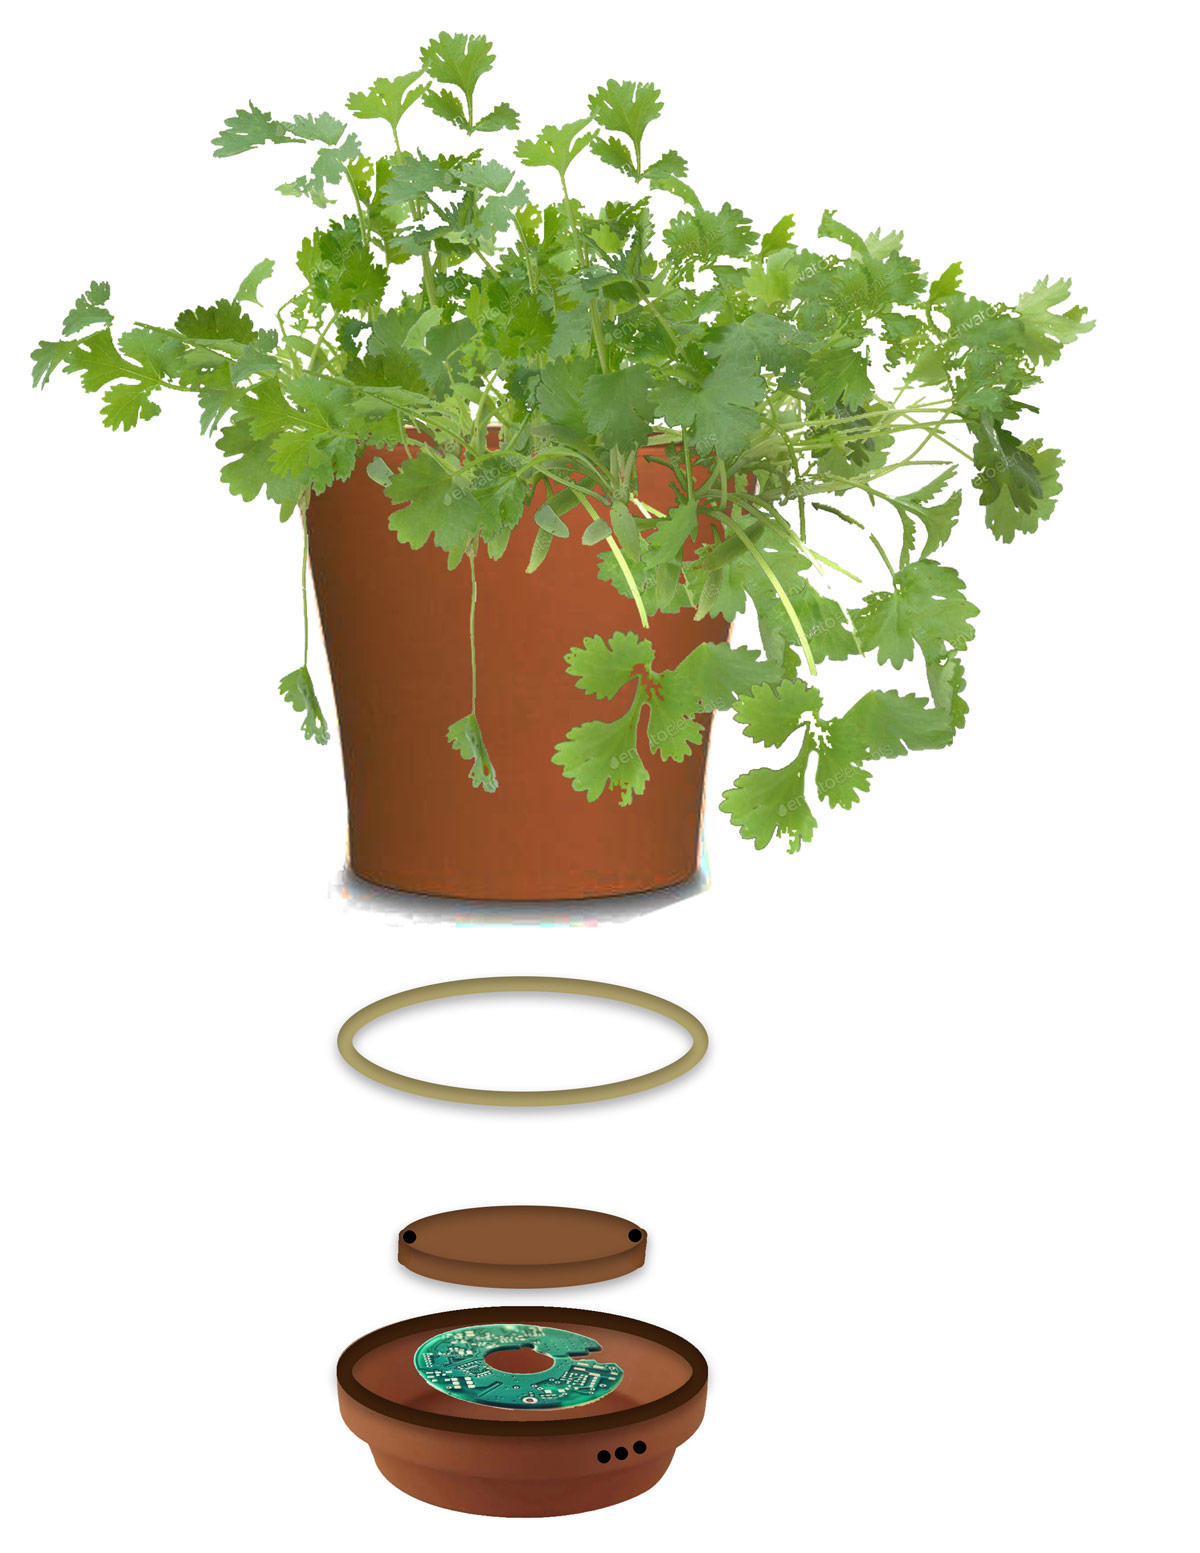 Layers of the prototype: the coriander plant pot, LED, pot dish parts, built-in circuit and speakers